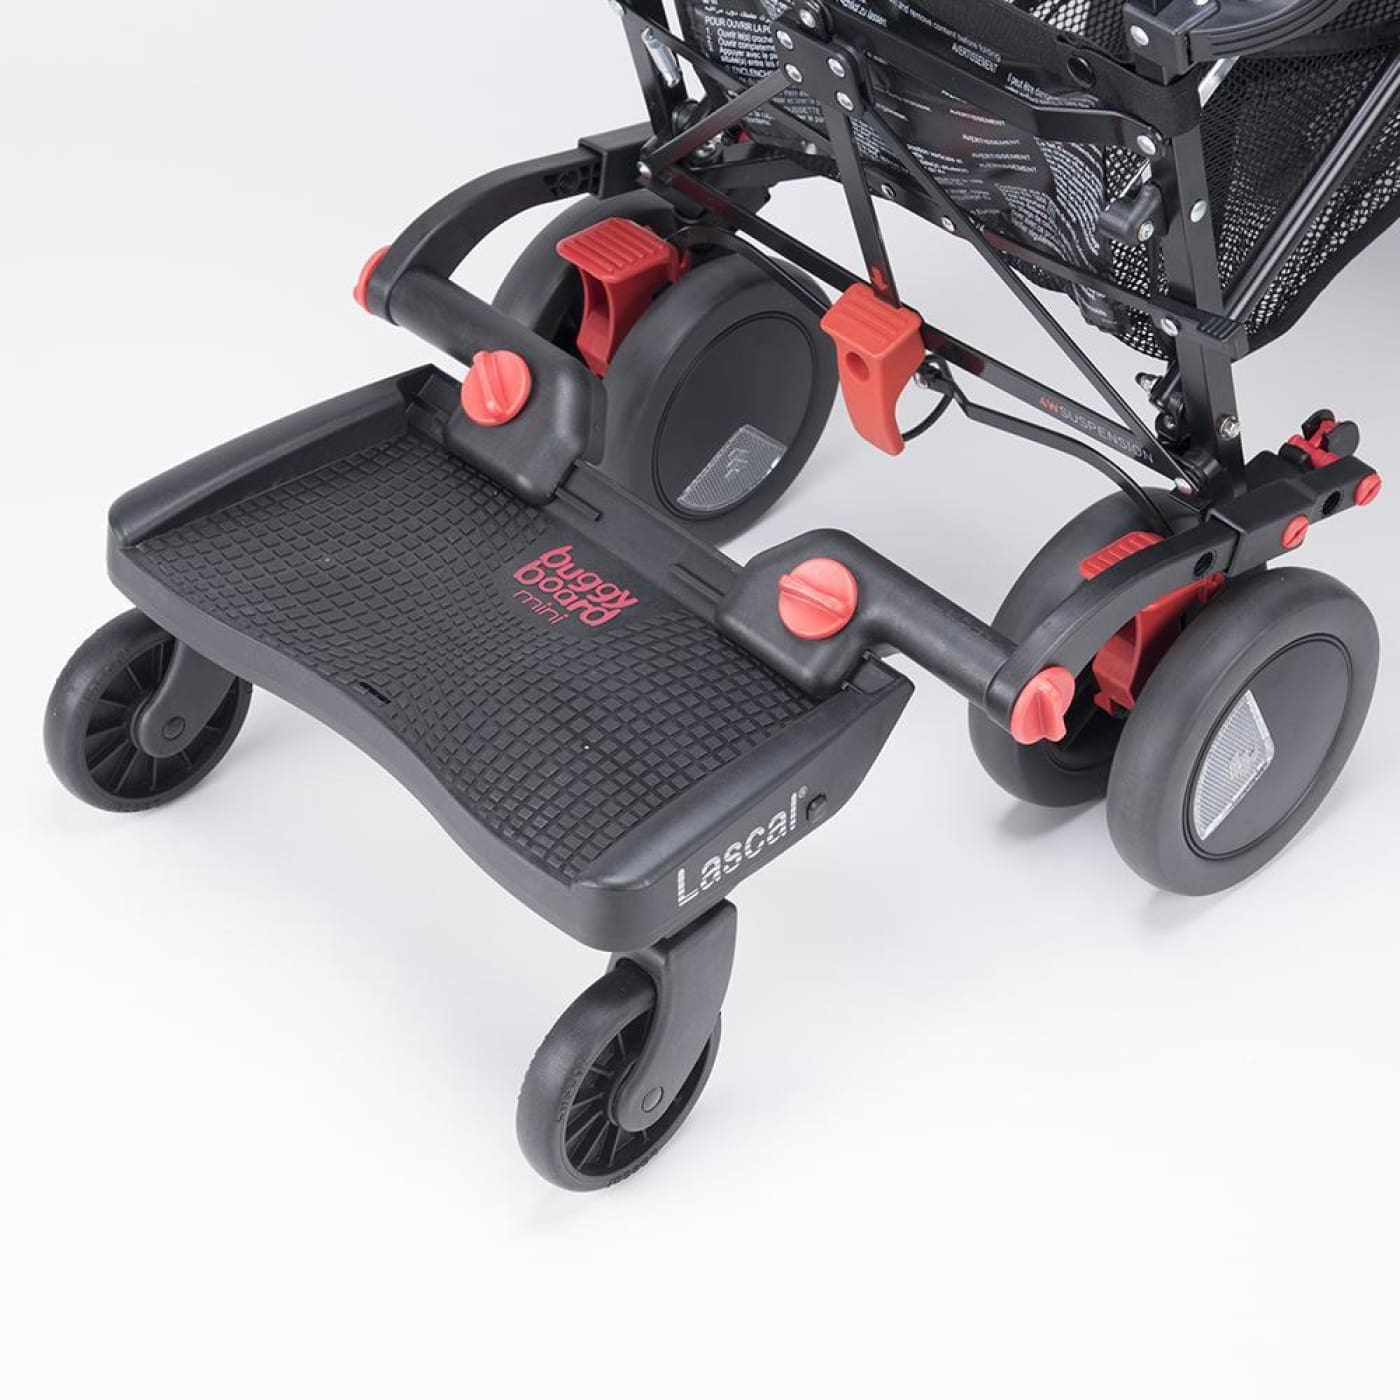 Lascal Buggy Board Mini 3D - Black - Black - PRAMS & STROLLERS - SKATE BOARDS